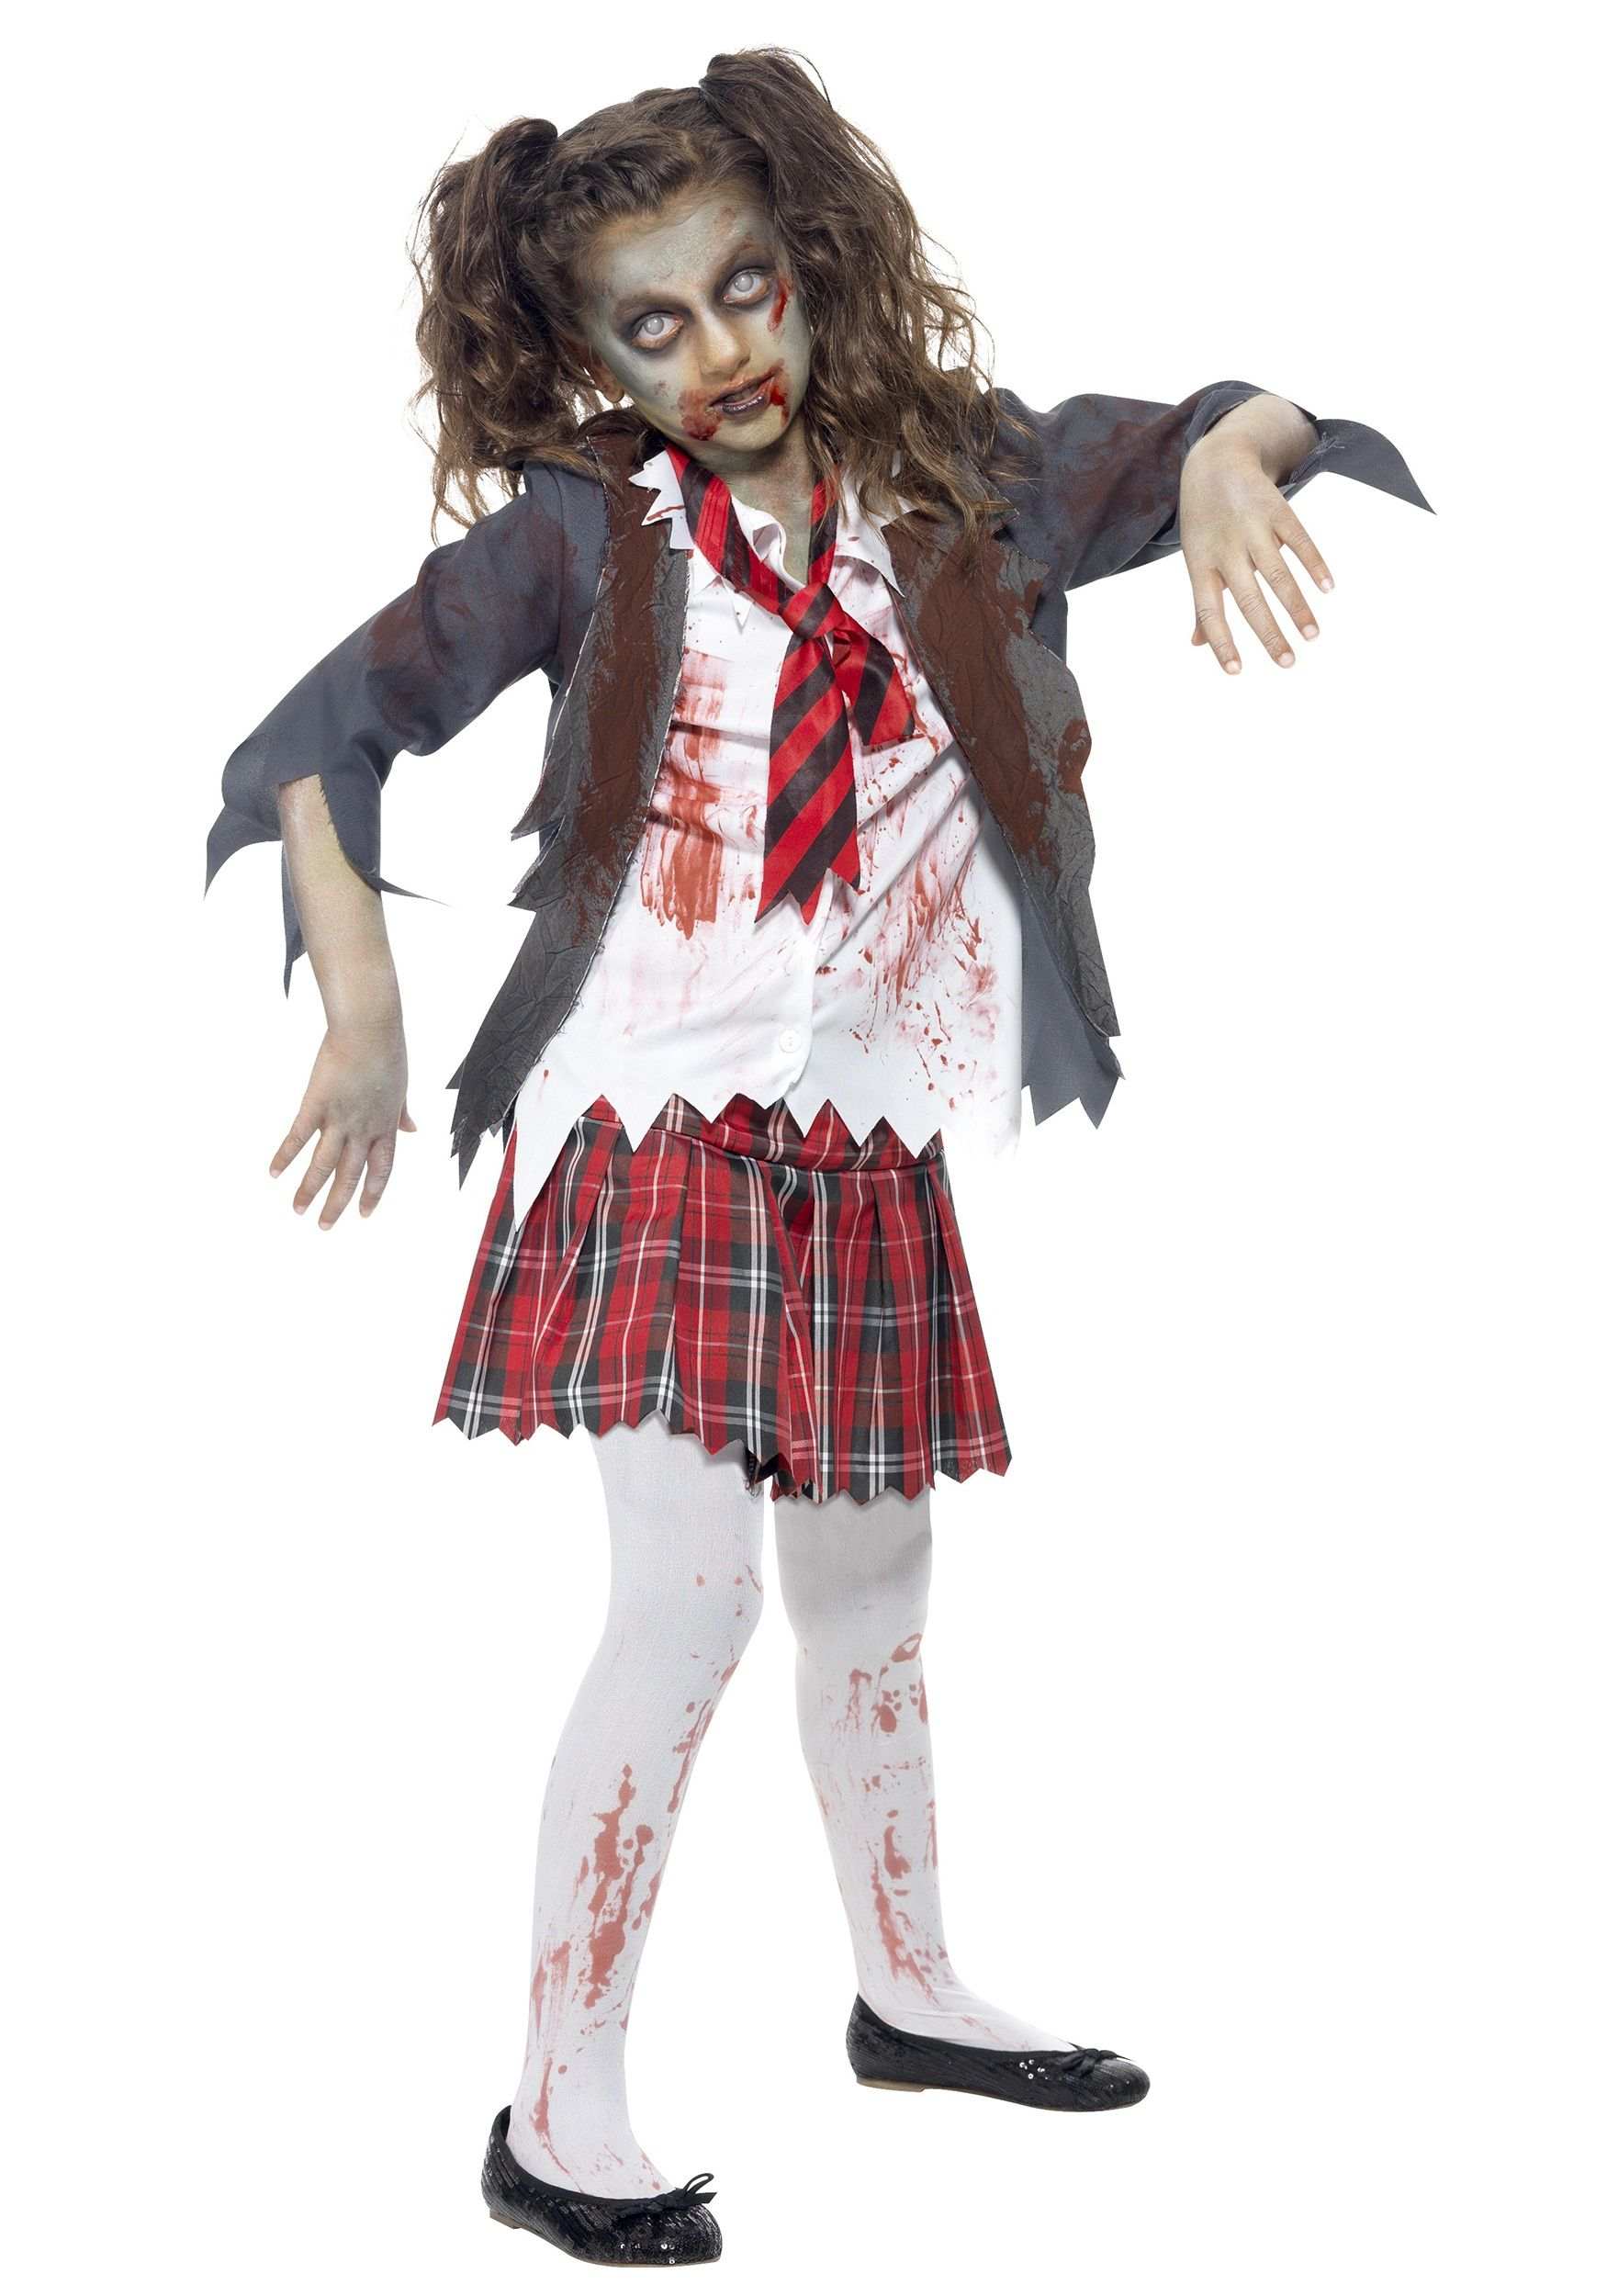 Halloween Zombie Kostüme Selber Machen Zombie Costume Ideas For Kids Kids Zombie School Girl Costume